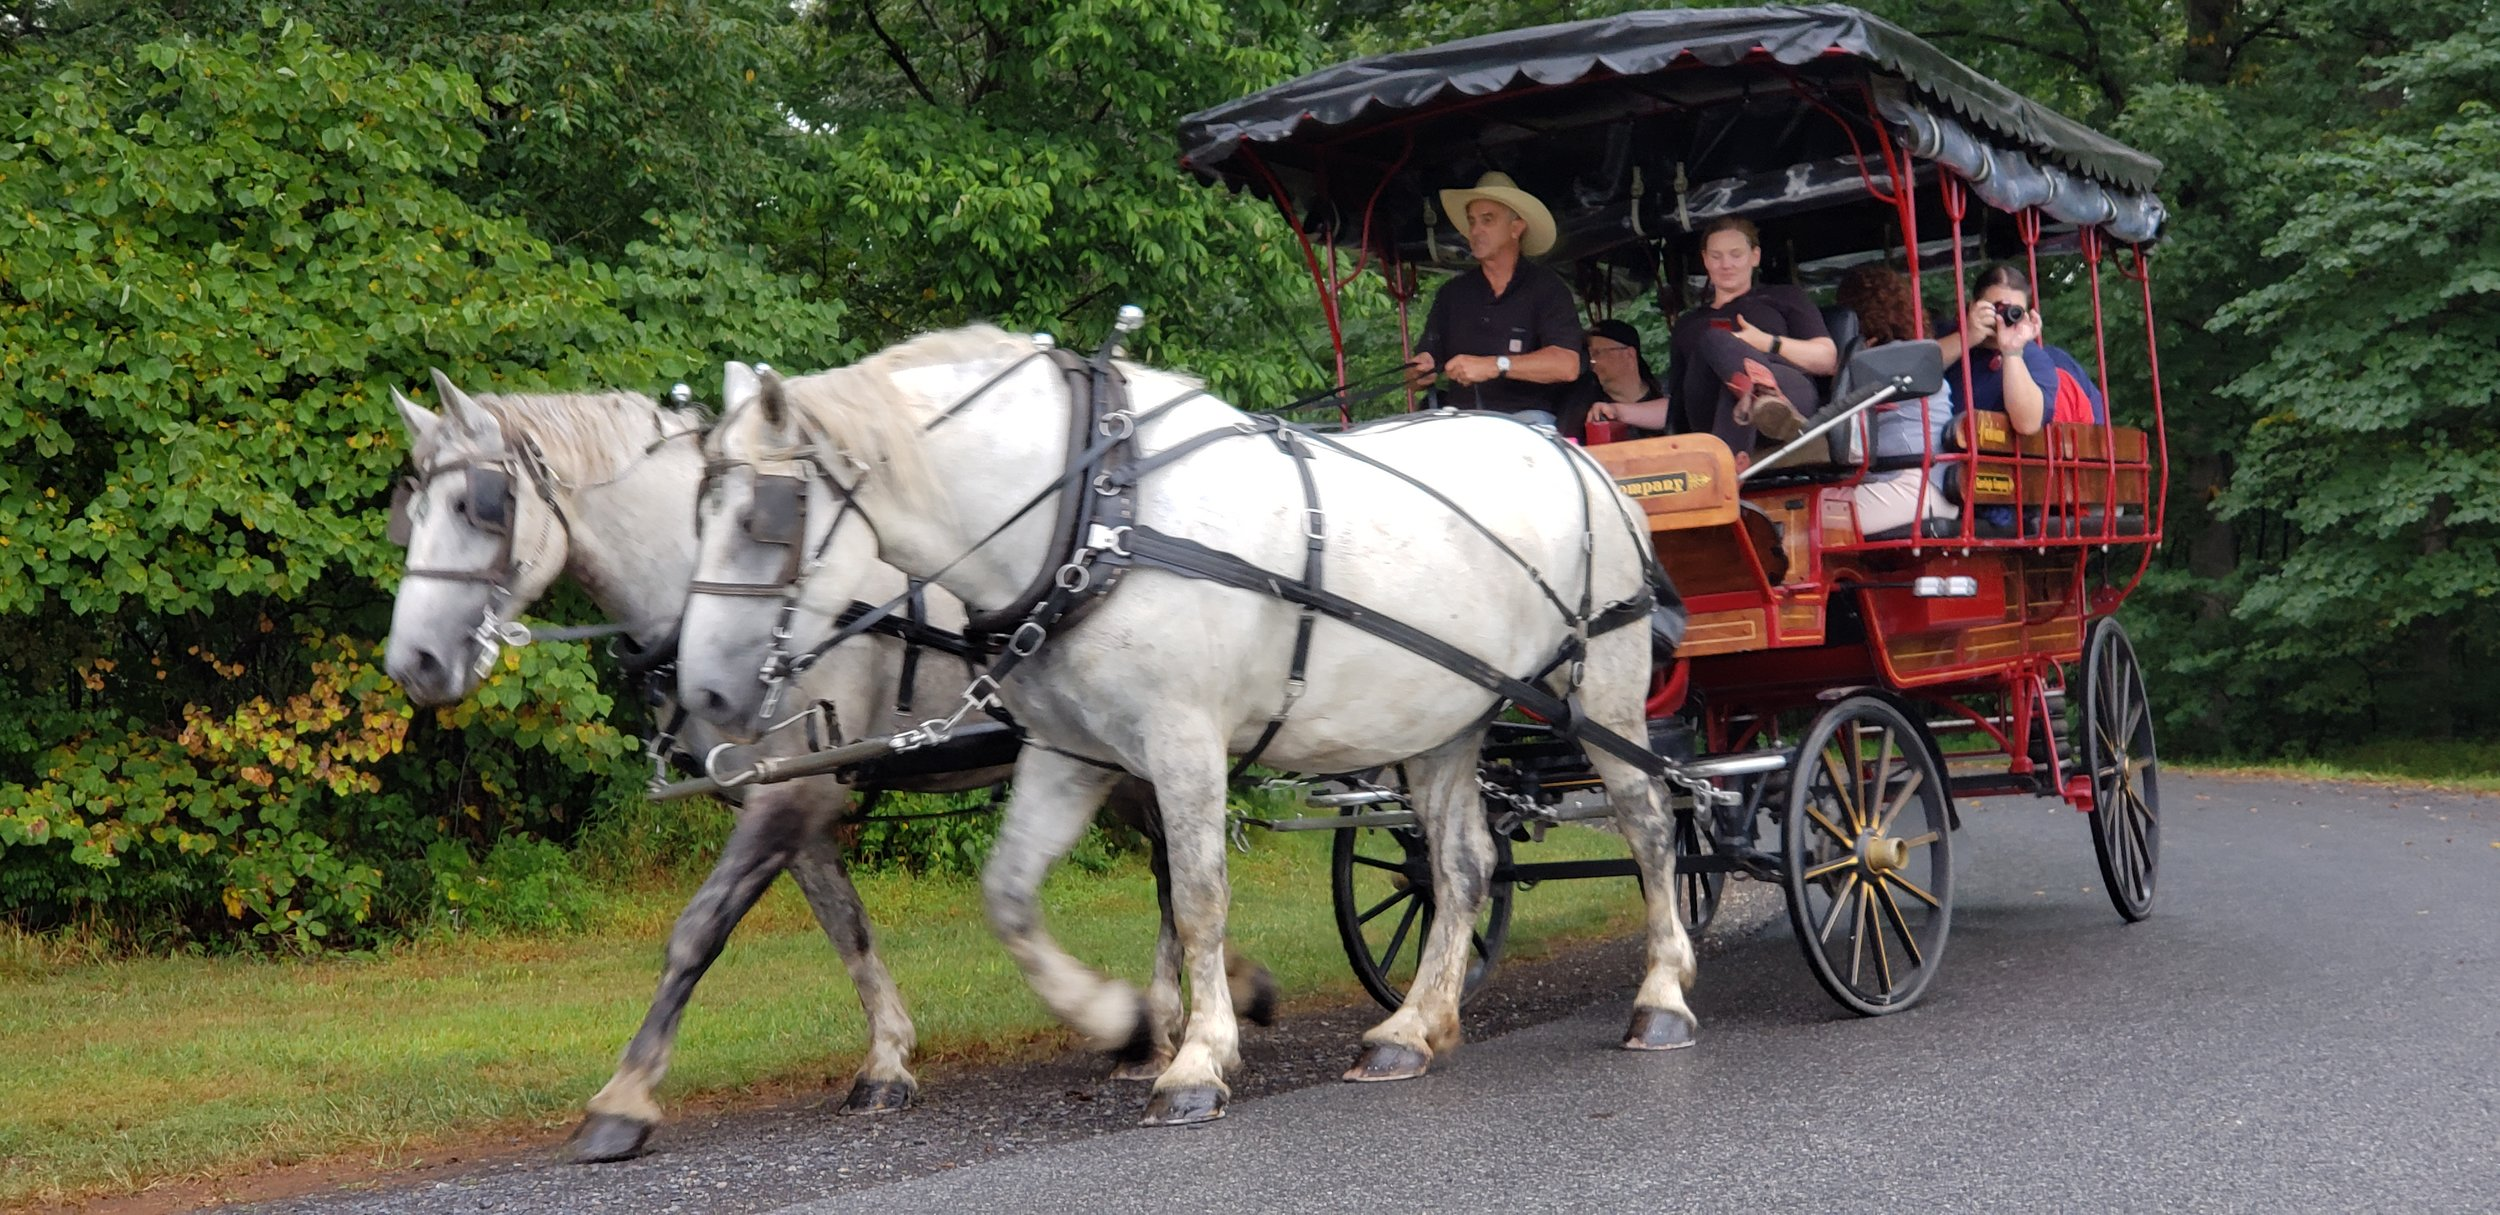 Two strong draft horses from the Victorian Carriage Company pull the wagon through the Gettysburg Battlefield